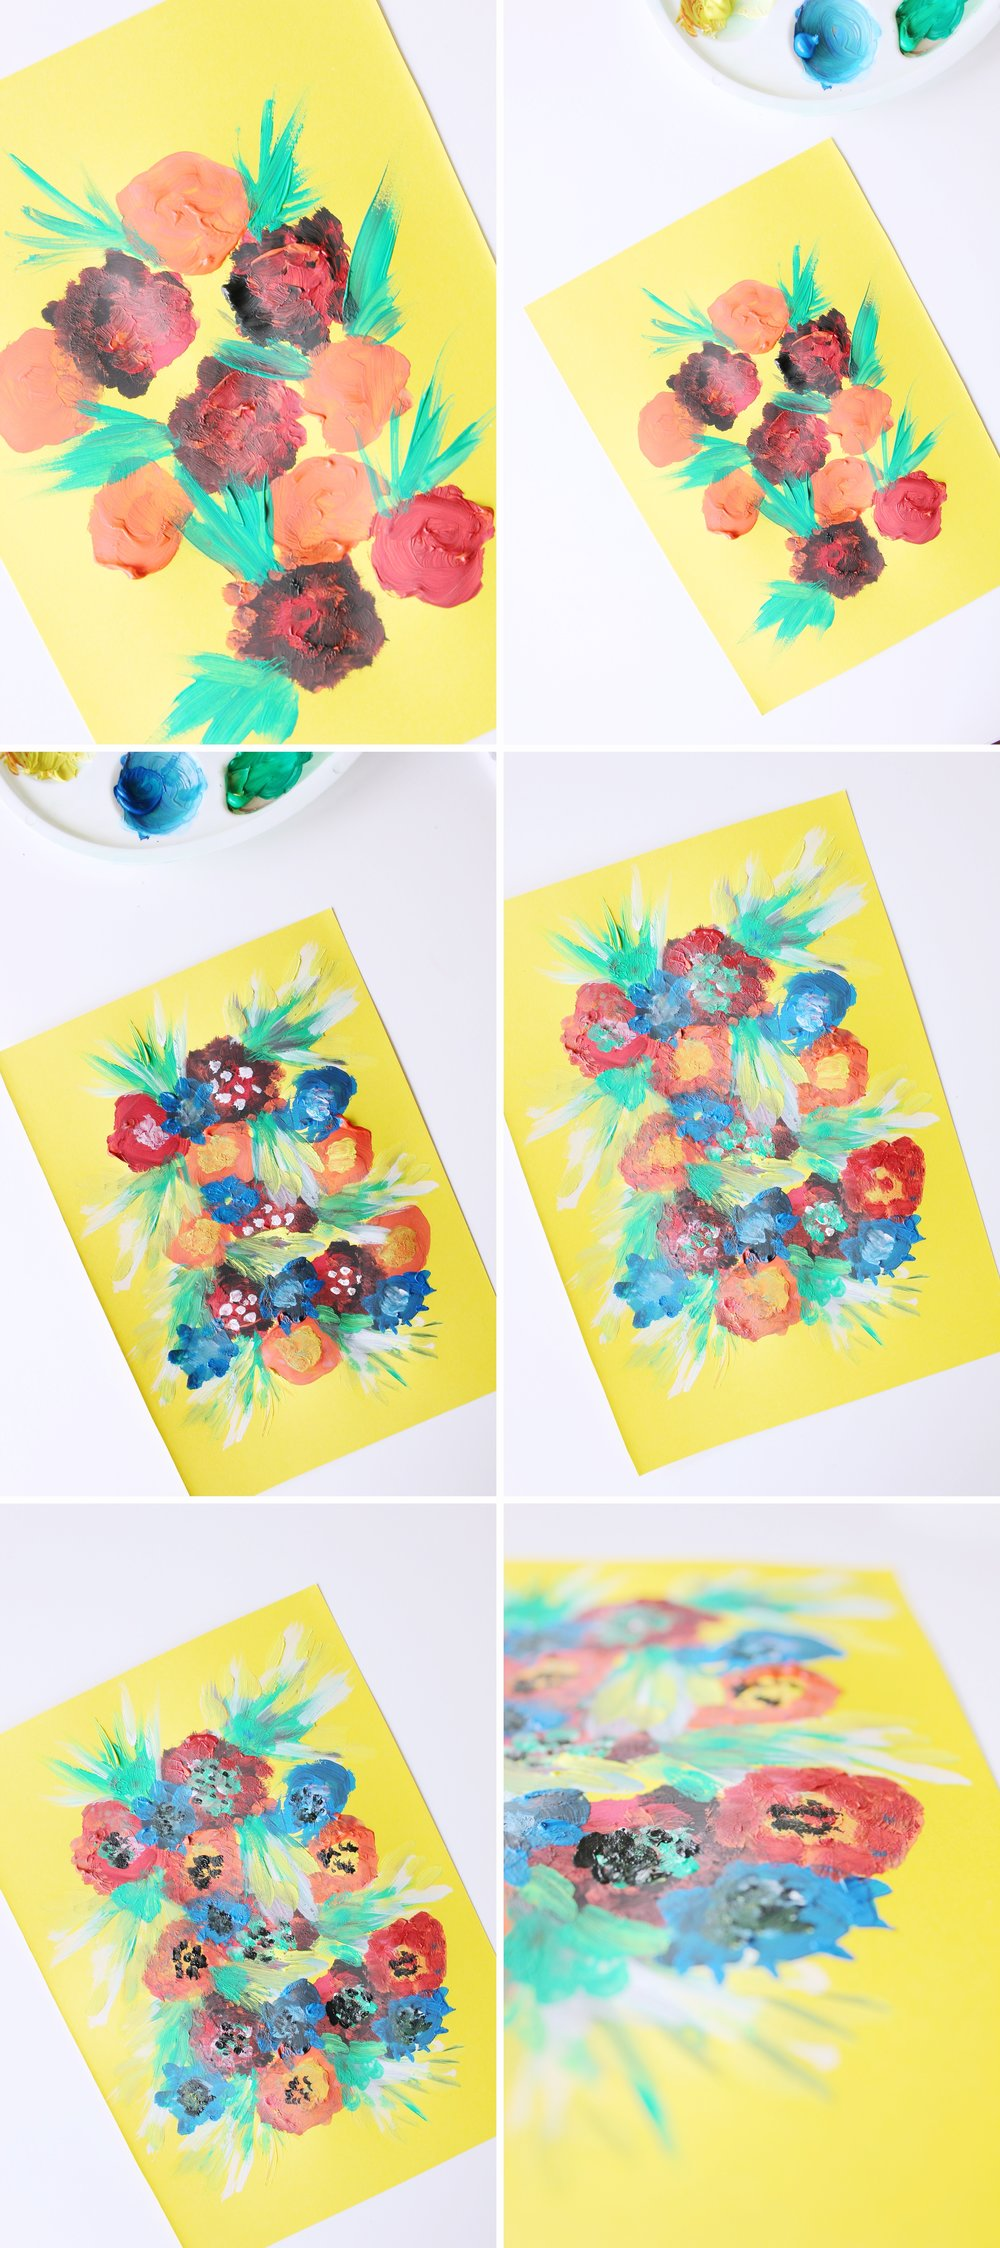 A fun and colorful tutorial on how to draw with gouache paints on colored cardboard!